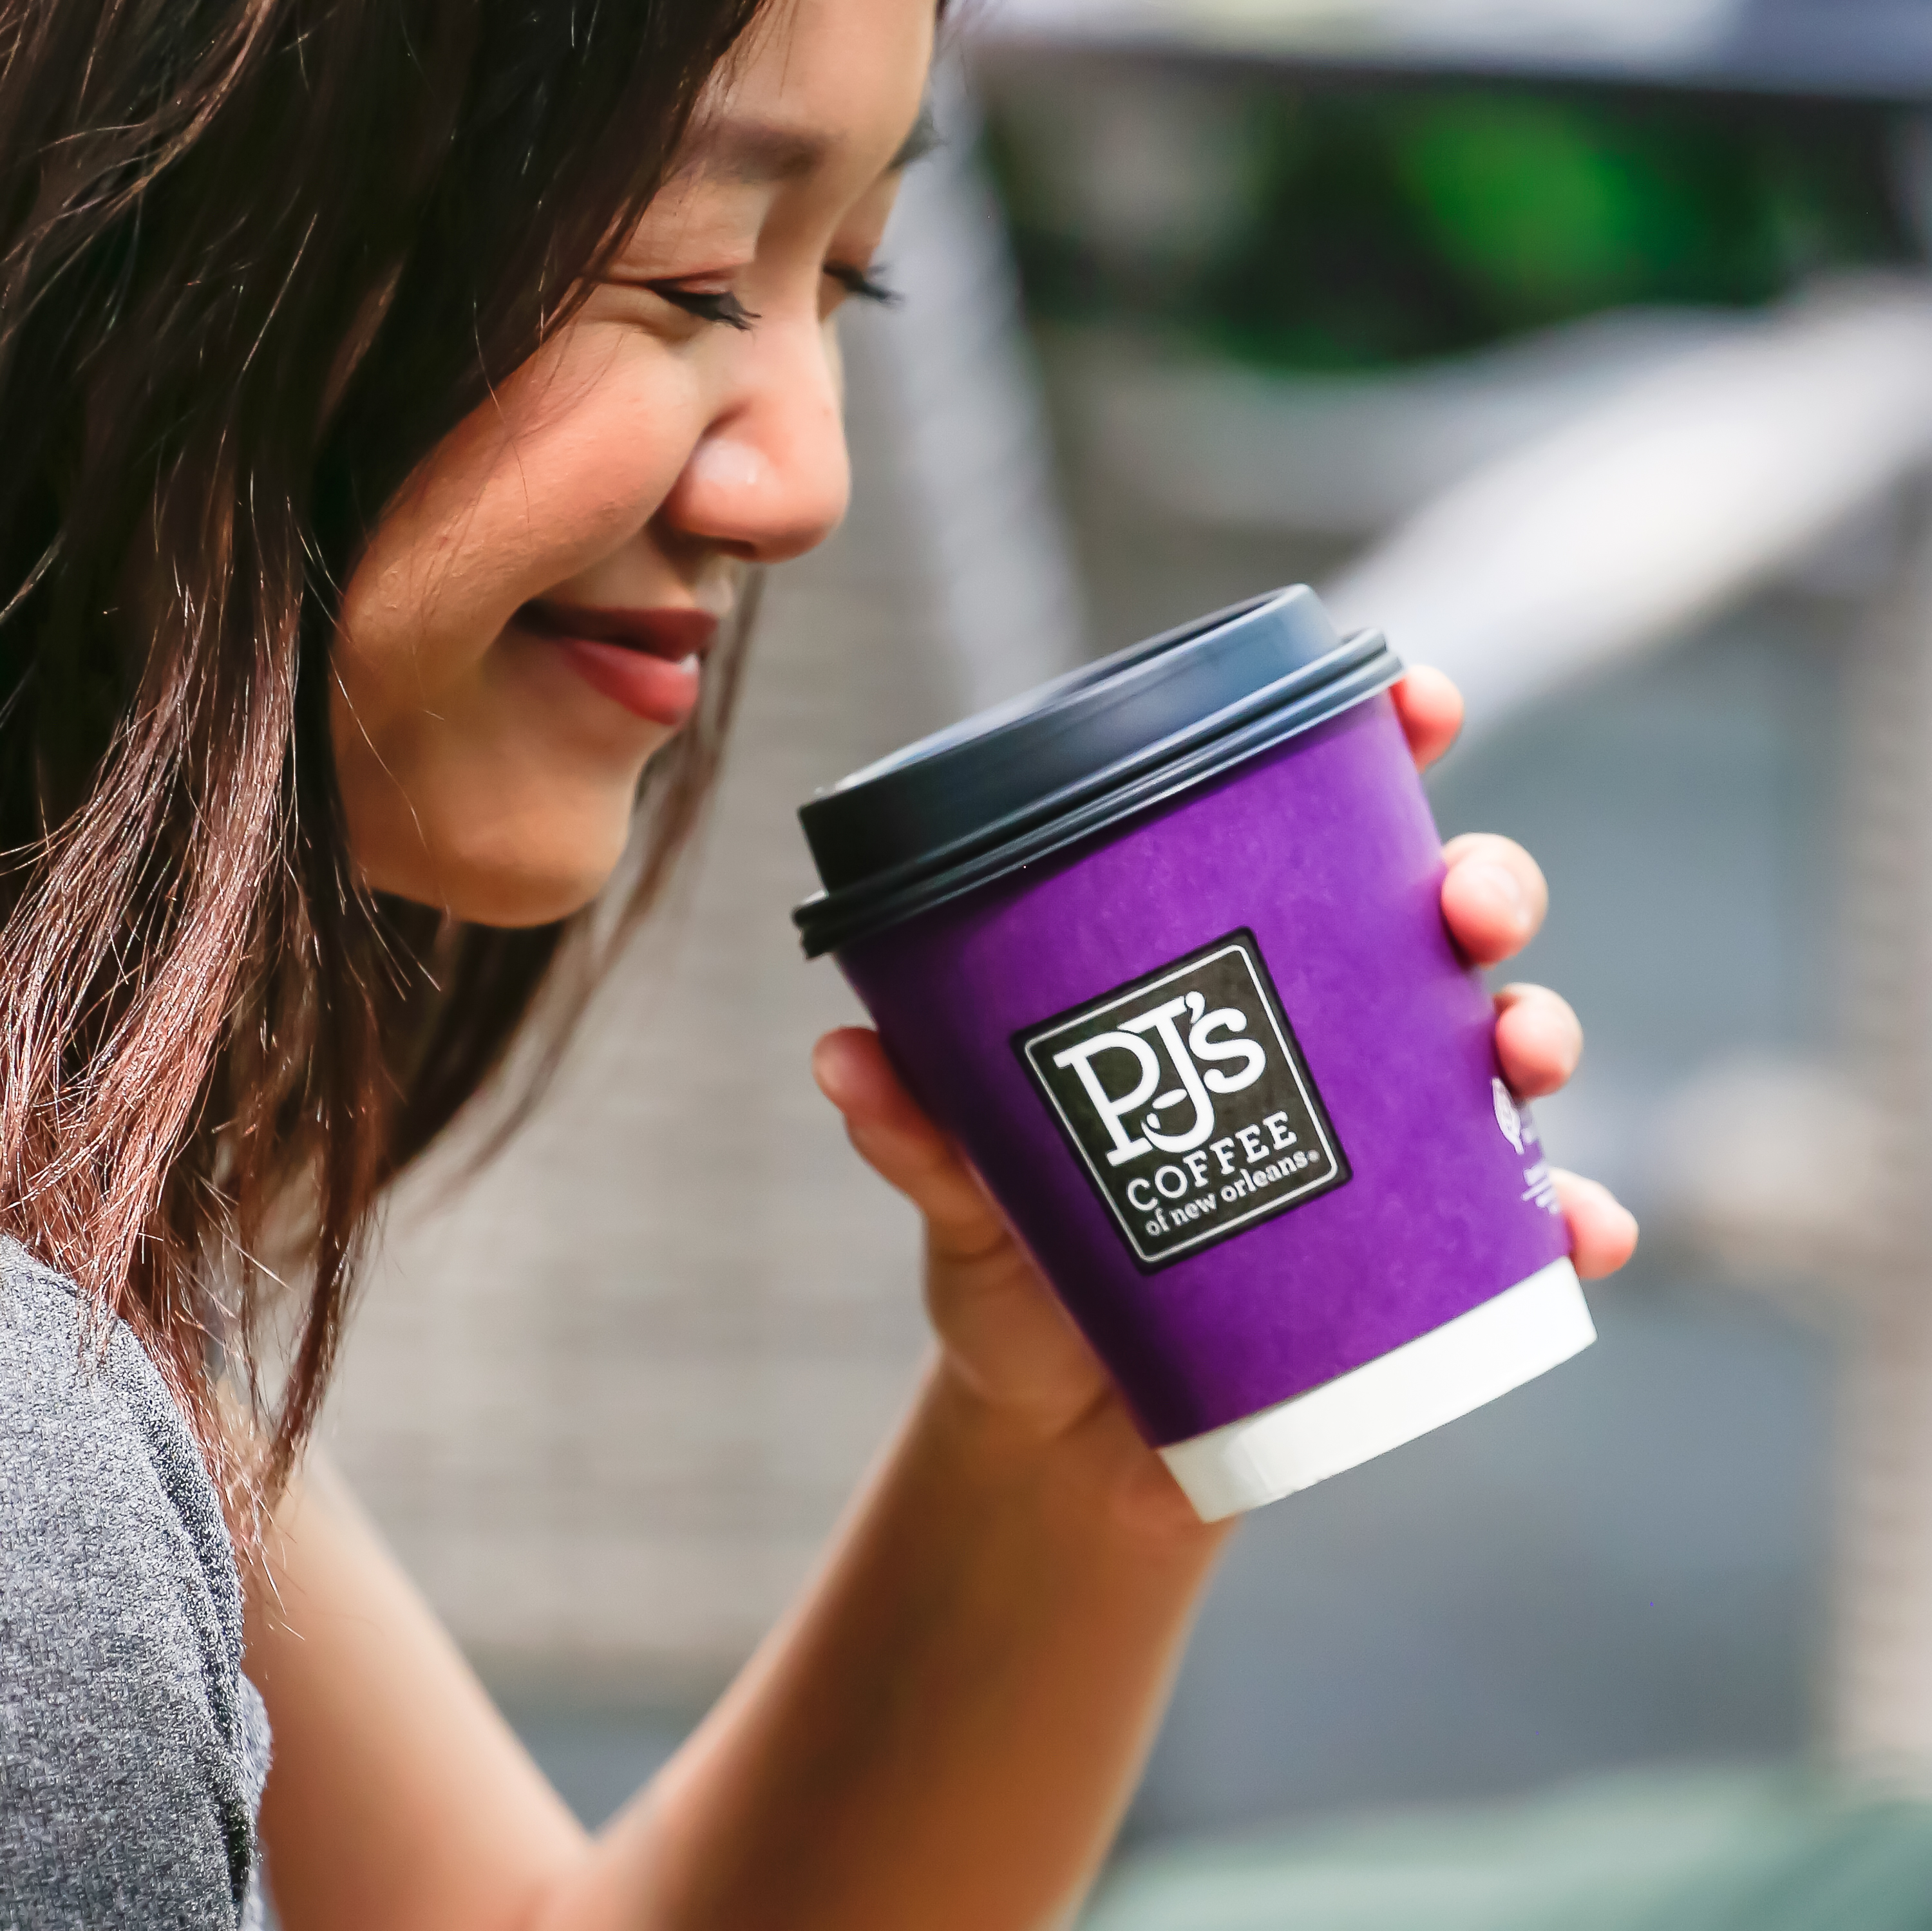 customers enjoy PJ's Coffee in more than 100 locations across the U.S.